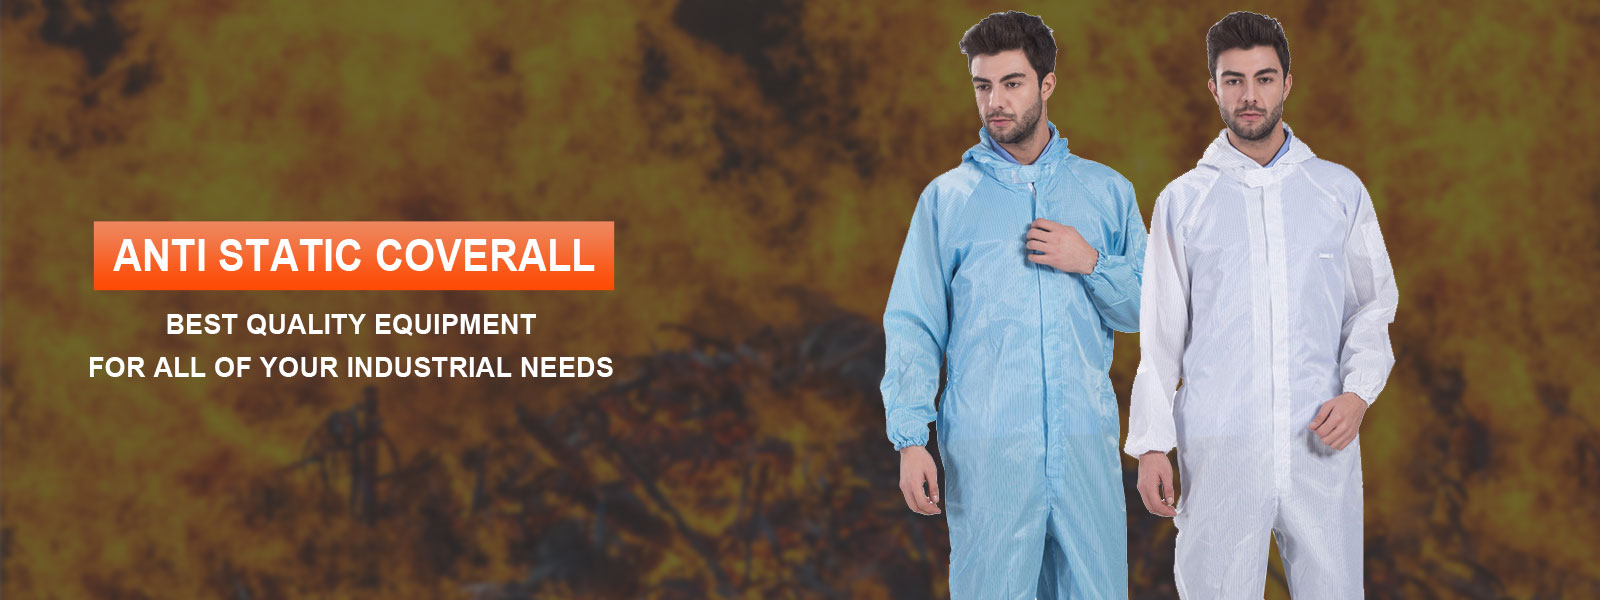 Anti Static Coverall Manufacturers in Argentina